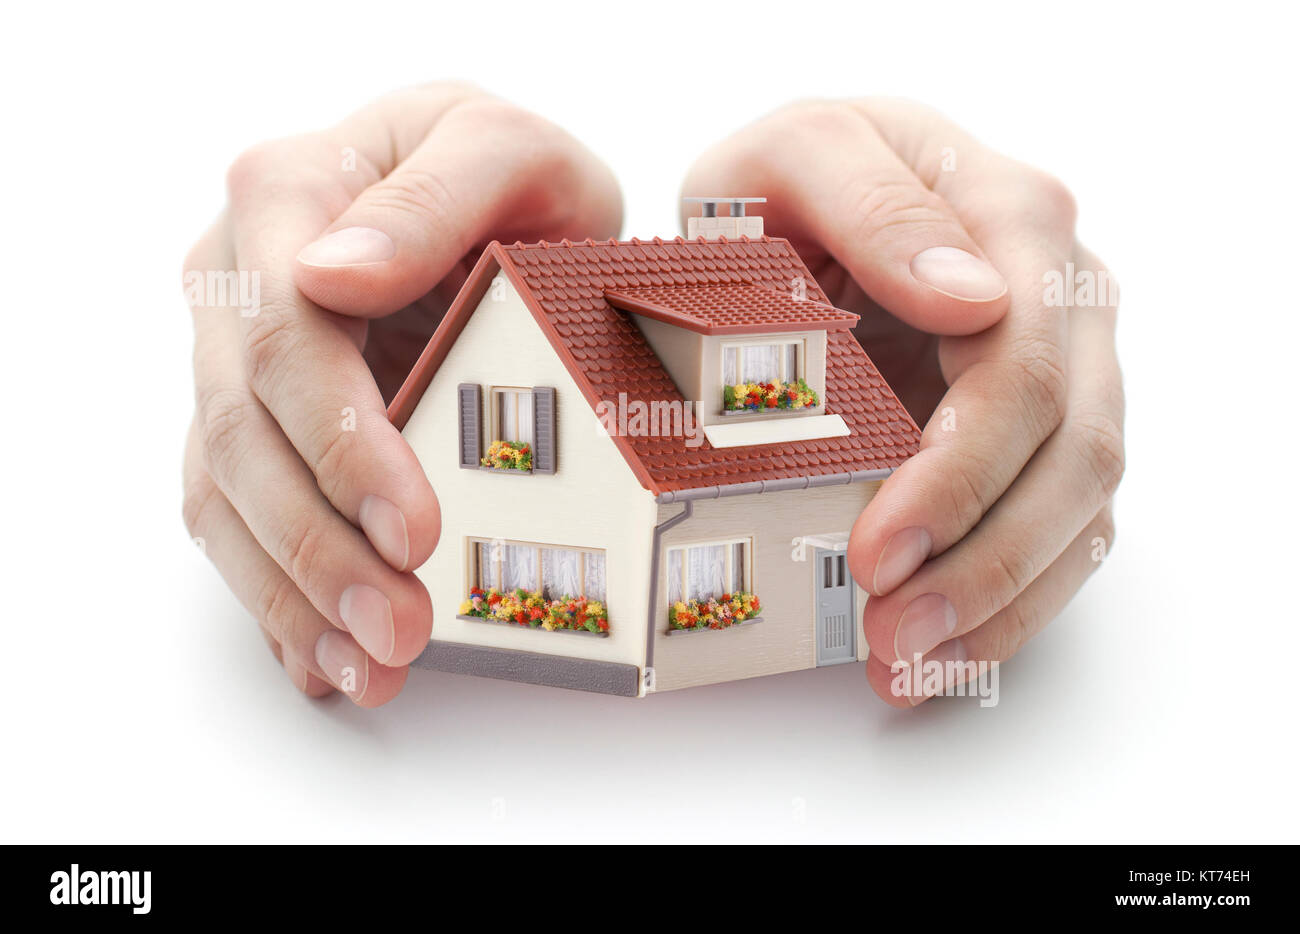 protect your house stock photo: 169802265 - alamy